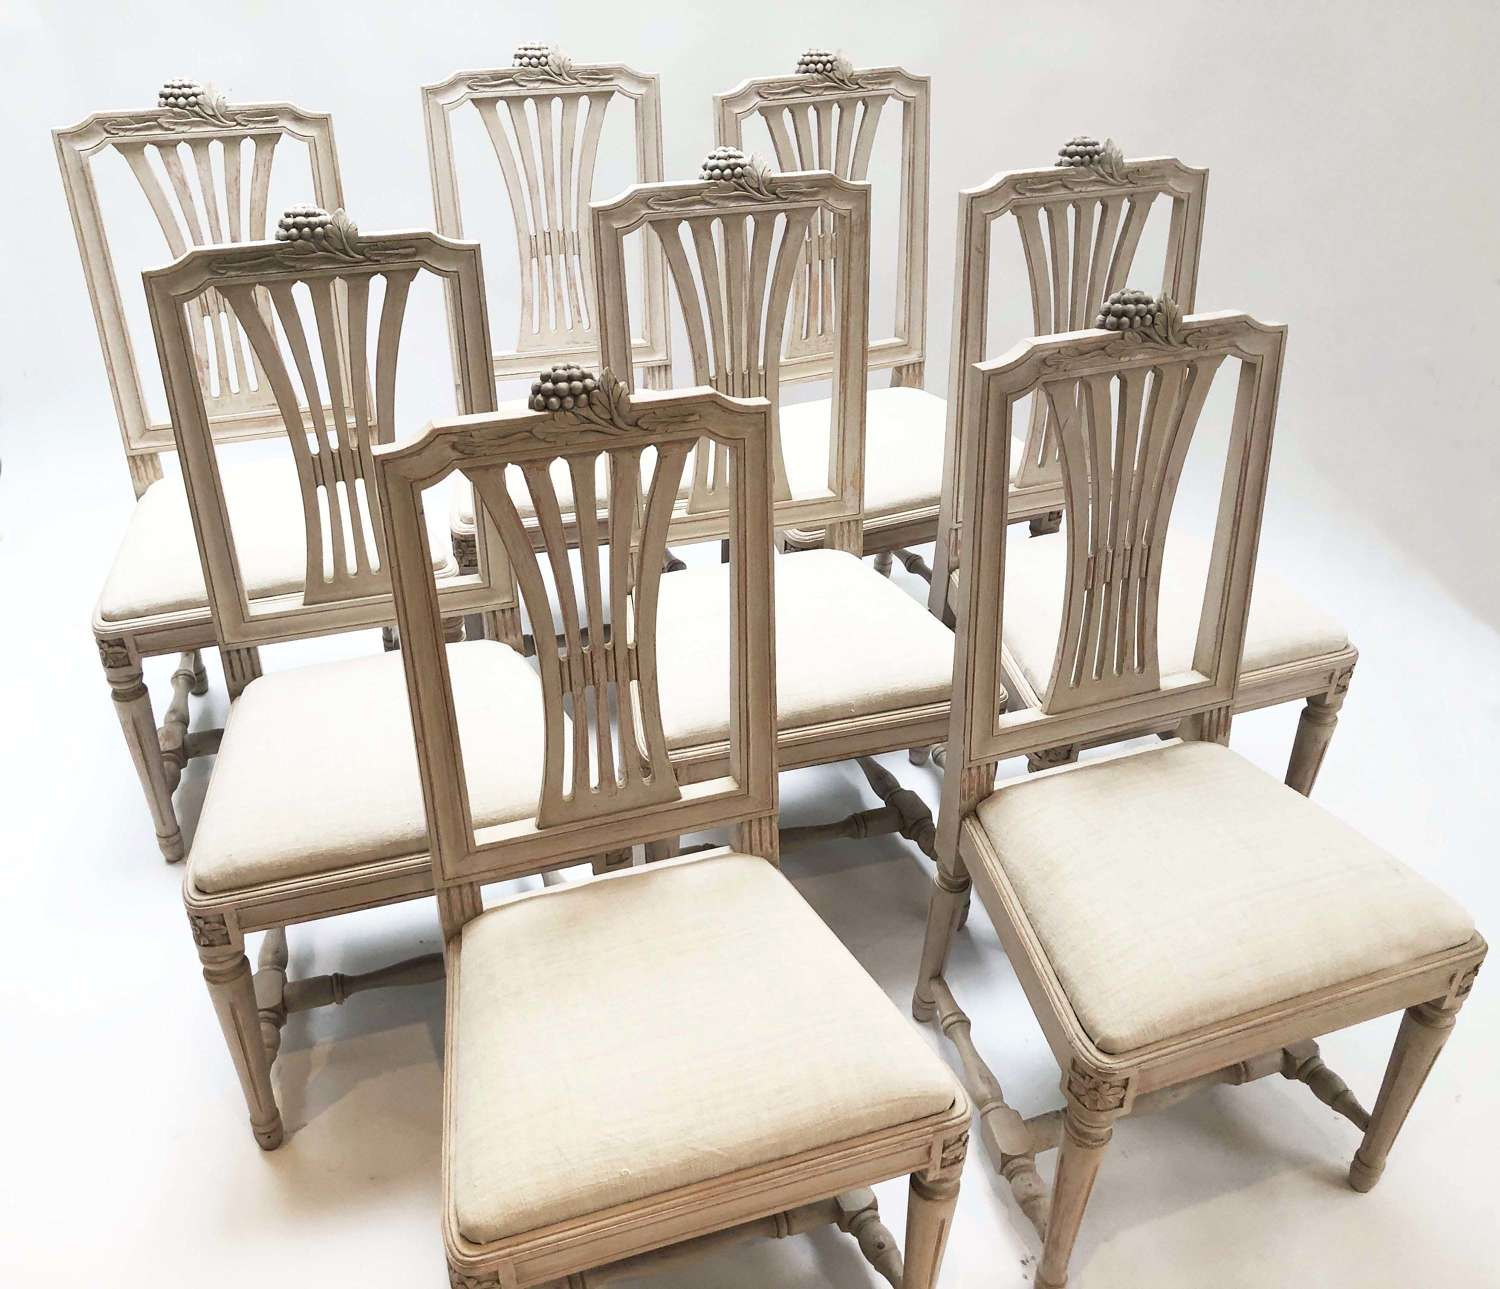 Set of 8 early 20th c Swedish Dining Chairs